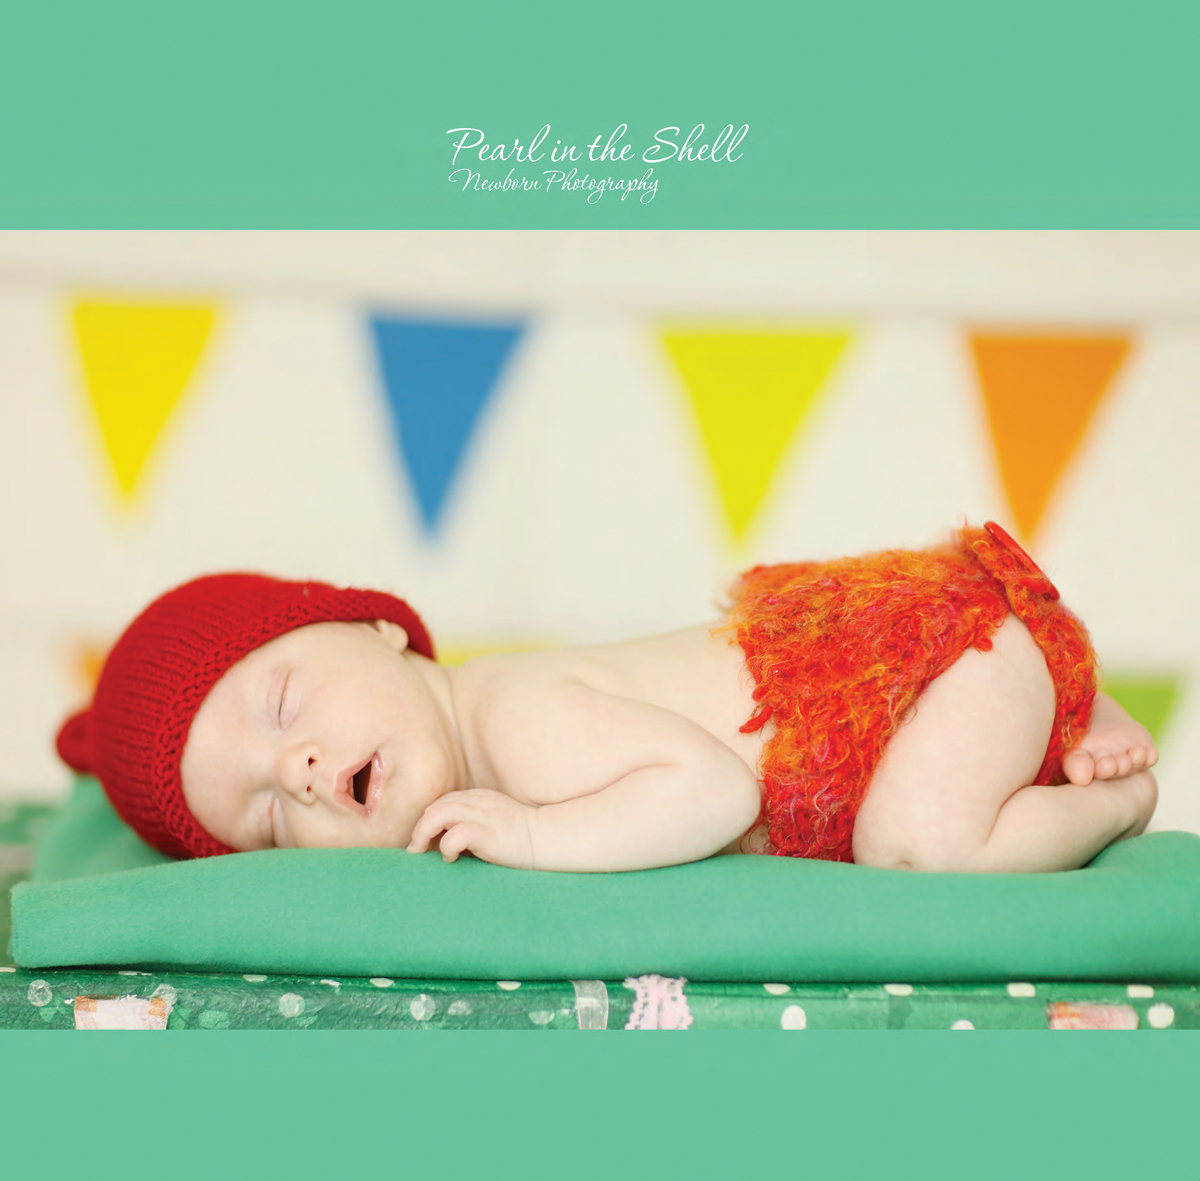 Pearl-in-the-Shell-Calendar-2020 (8)